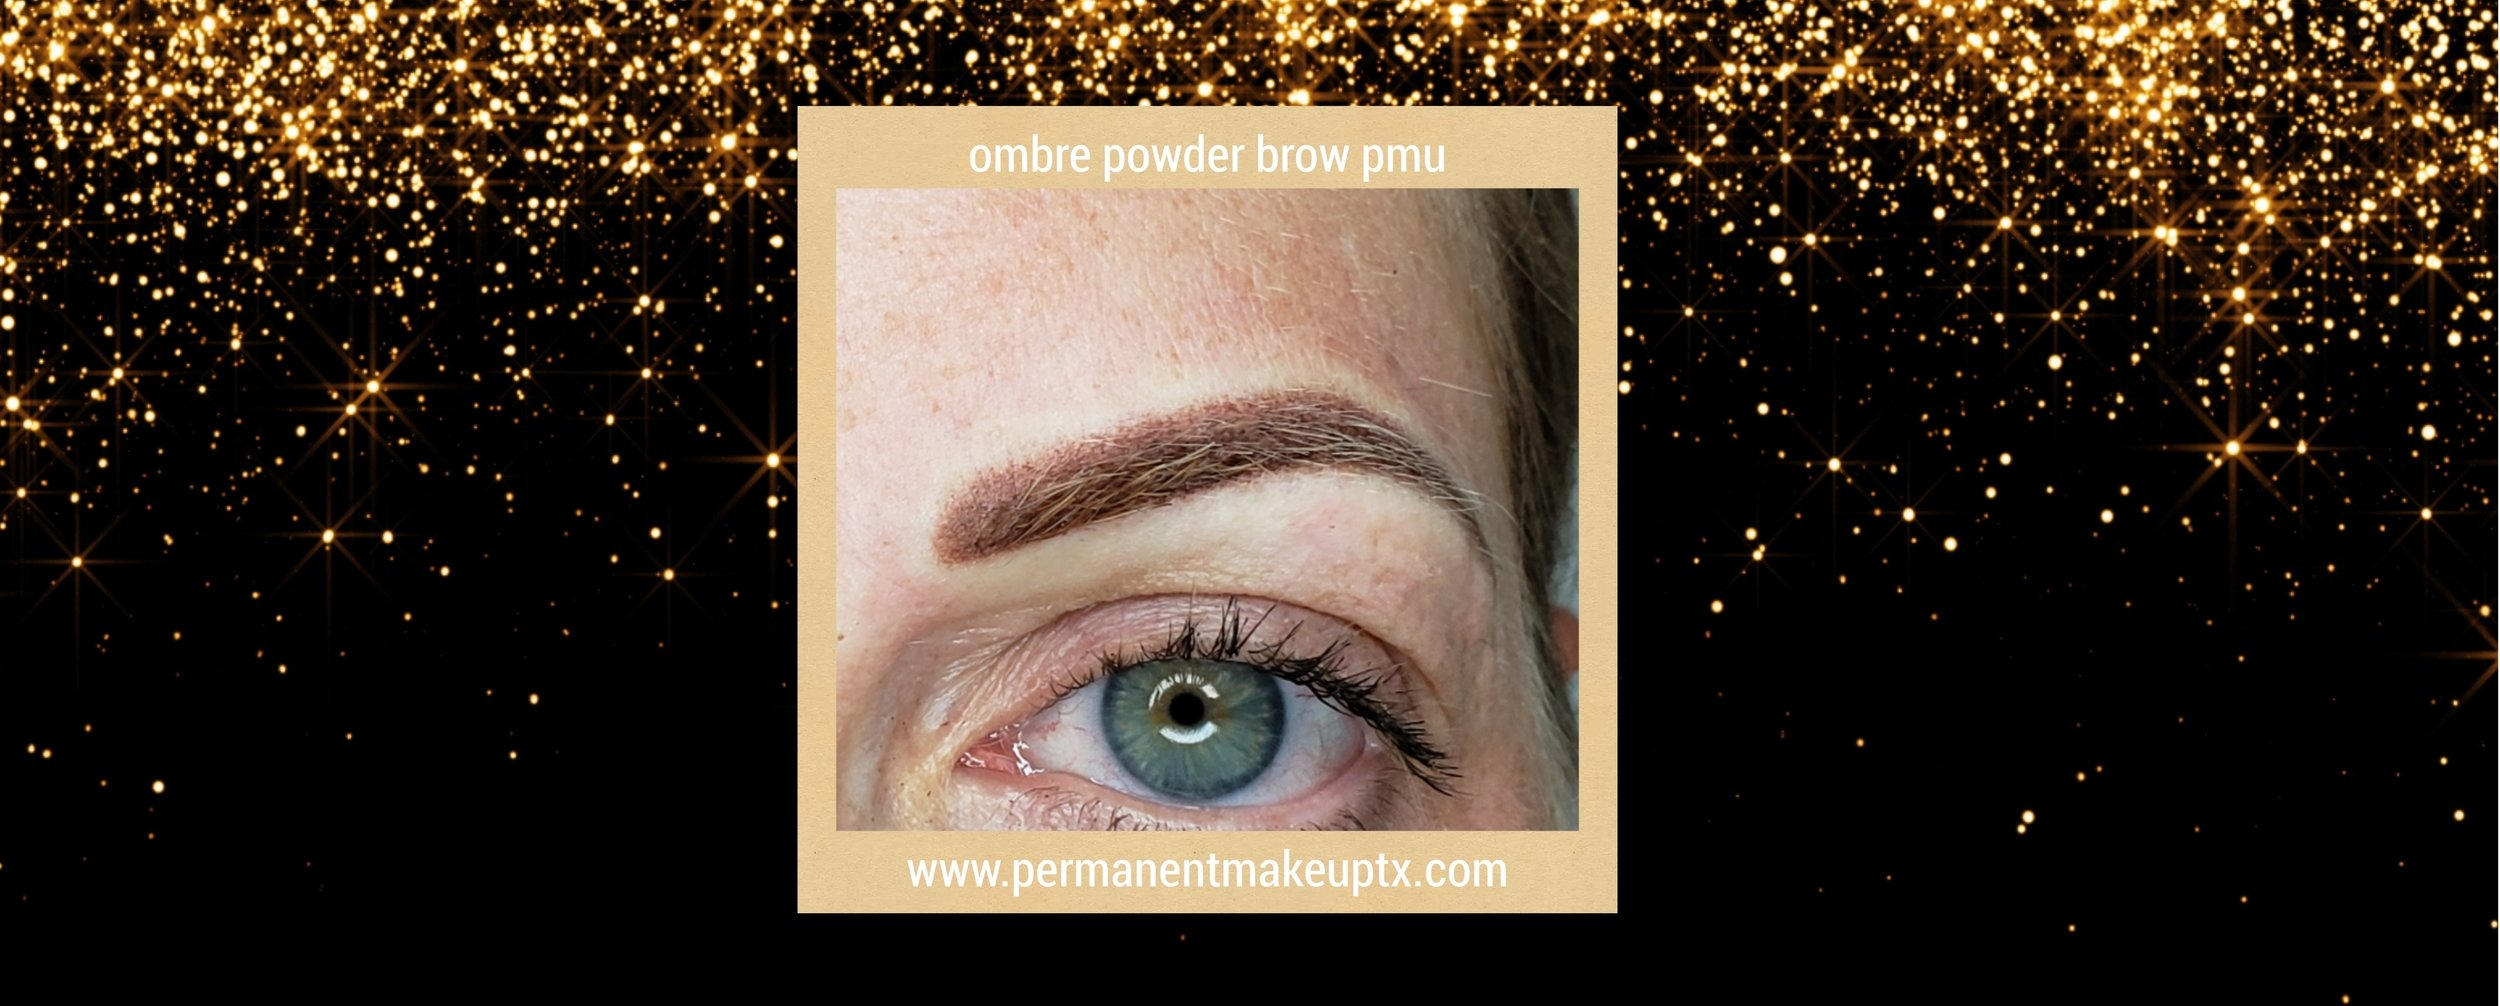 ombre powder brow1.jpg